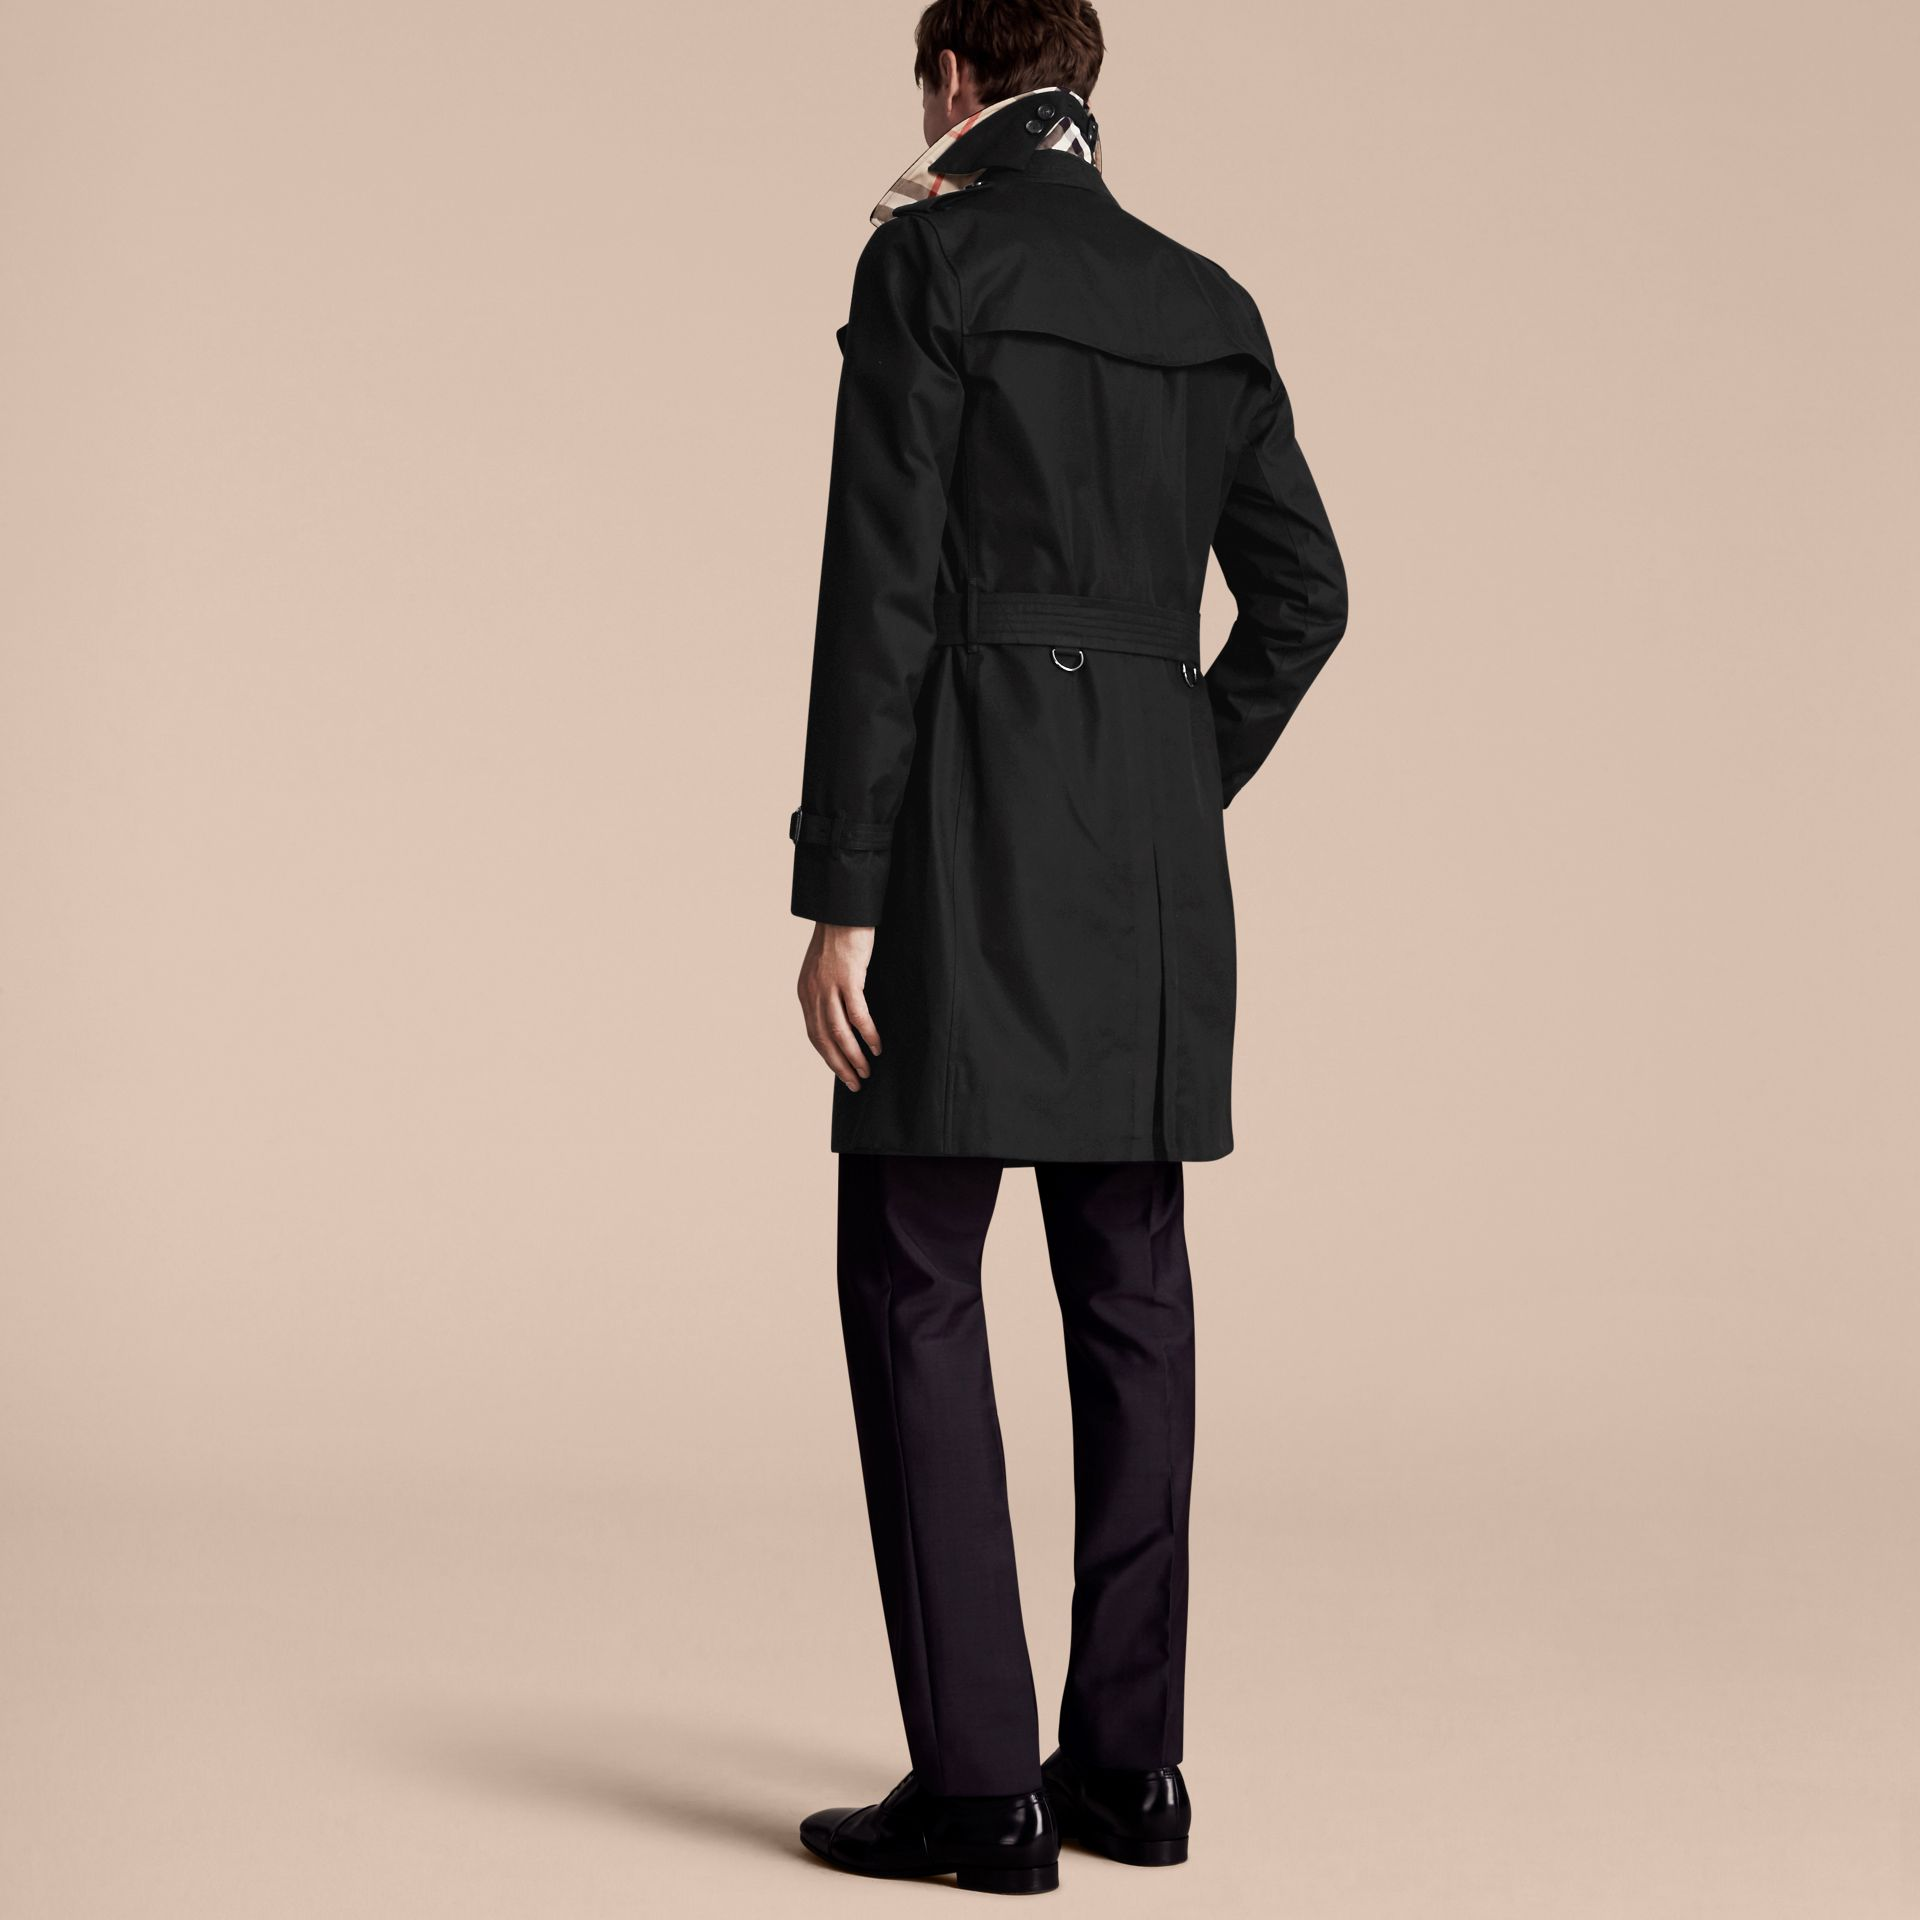 Black The Sandringham – Long Heritage Trench Coat Black - gallery image 3